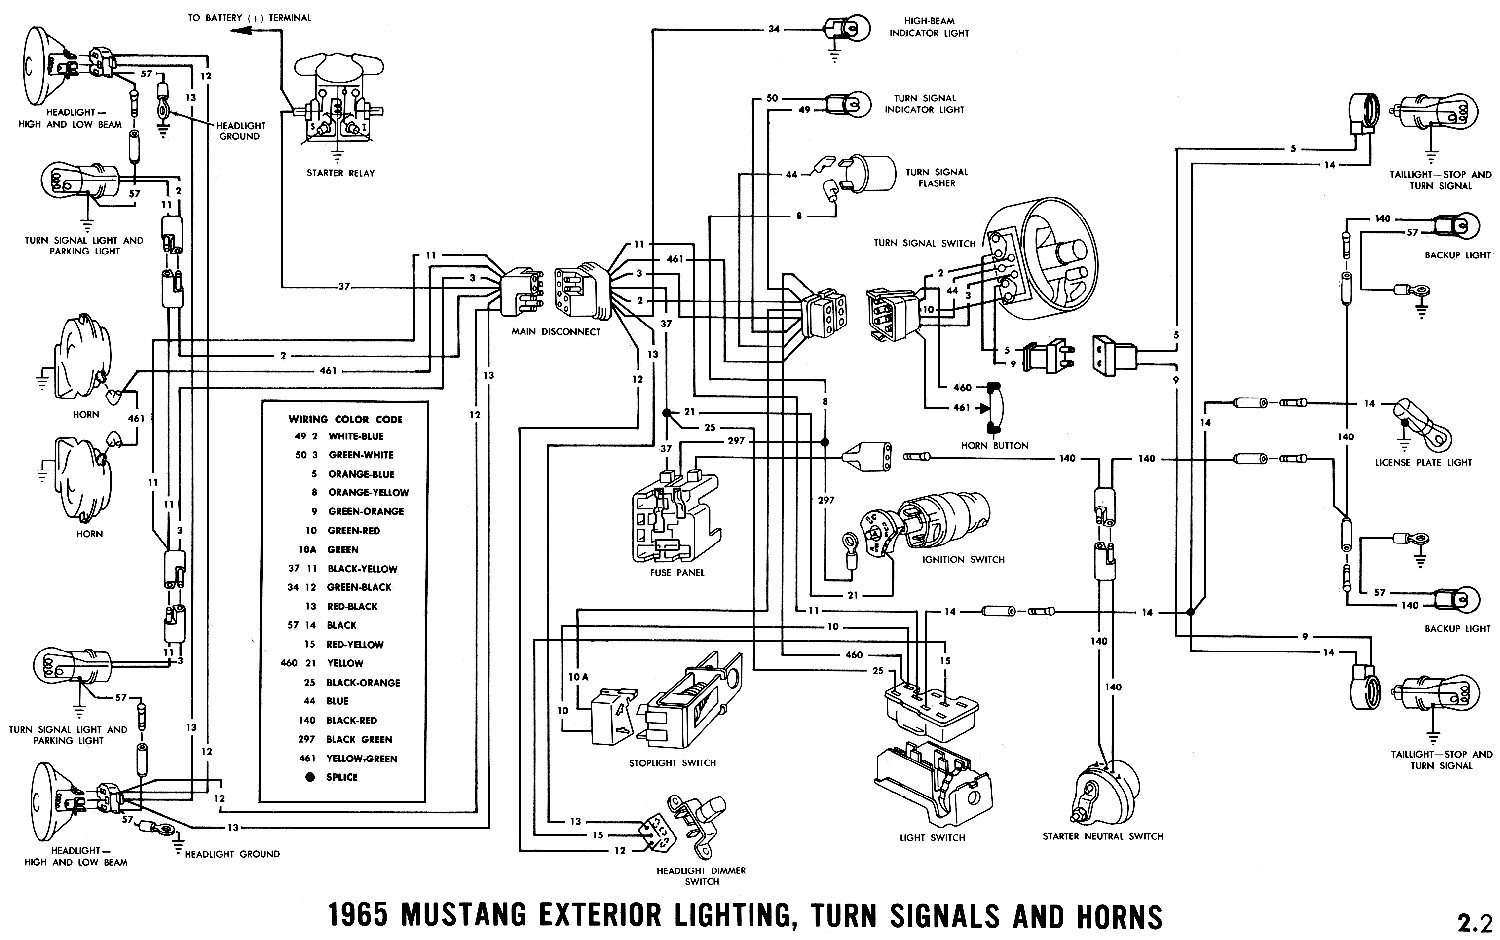 1969 Ford F100 Horn Wiring Diagram Manual E Books Mustang Engine 1965 Data Detailed1968 Schematic 1978